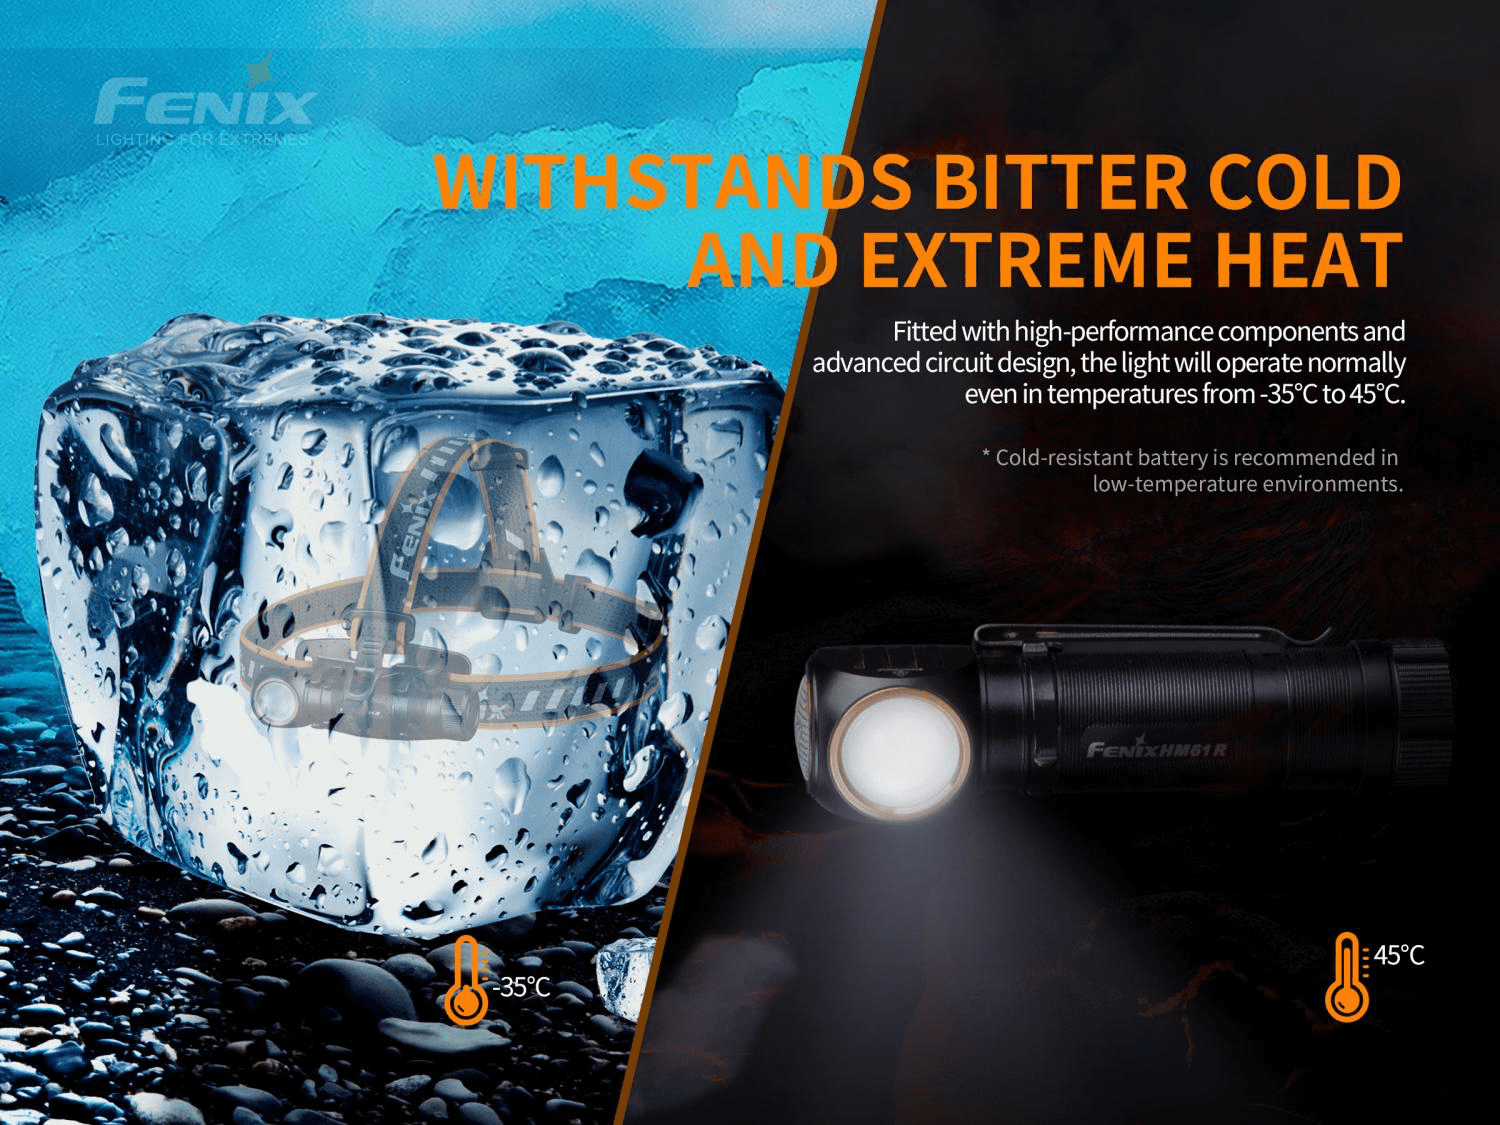 Fenix HM61R LED Headlamp, Rechargeable Powerful Lightweight Headlamp in India, Mulit-Functional Head Torch with Flood and Spot Light, Buy Fenix HM61R in India, Multi Purpose Torch & Headlamp